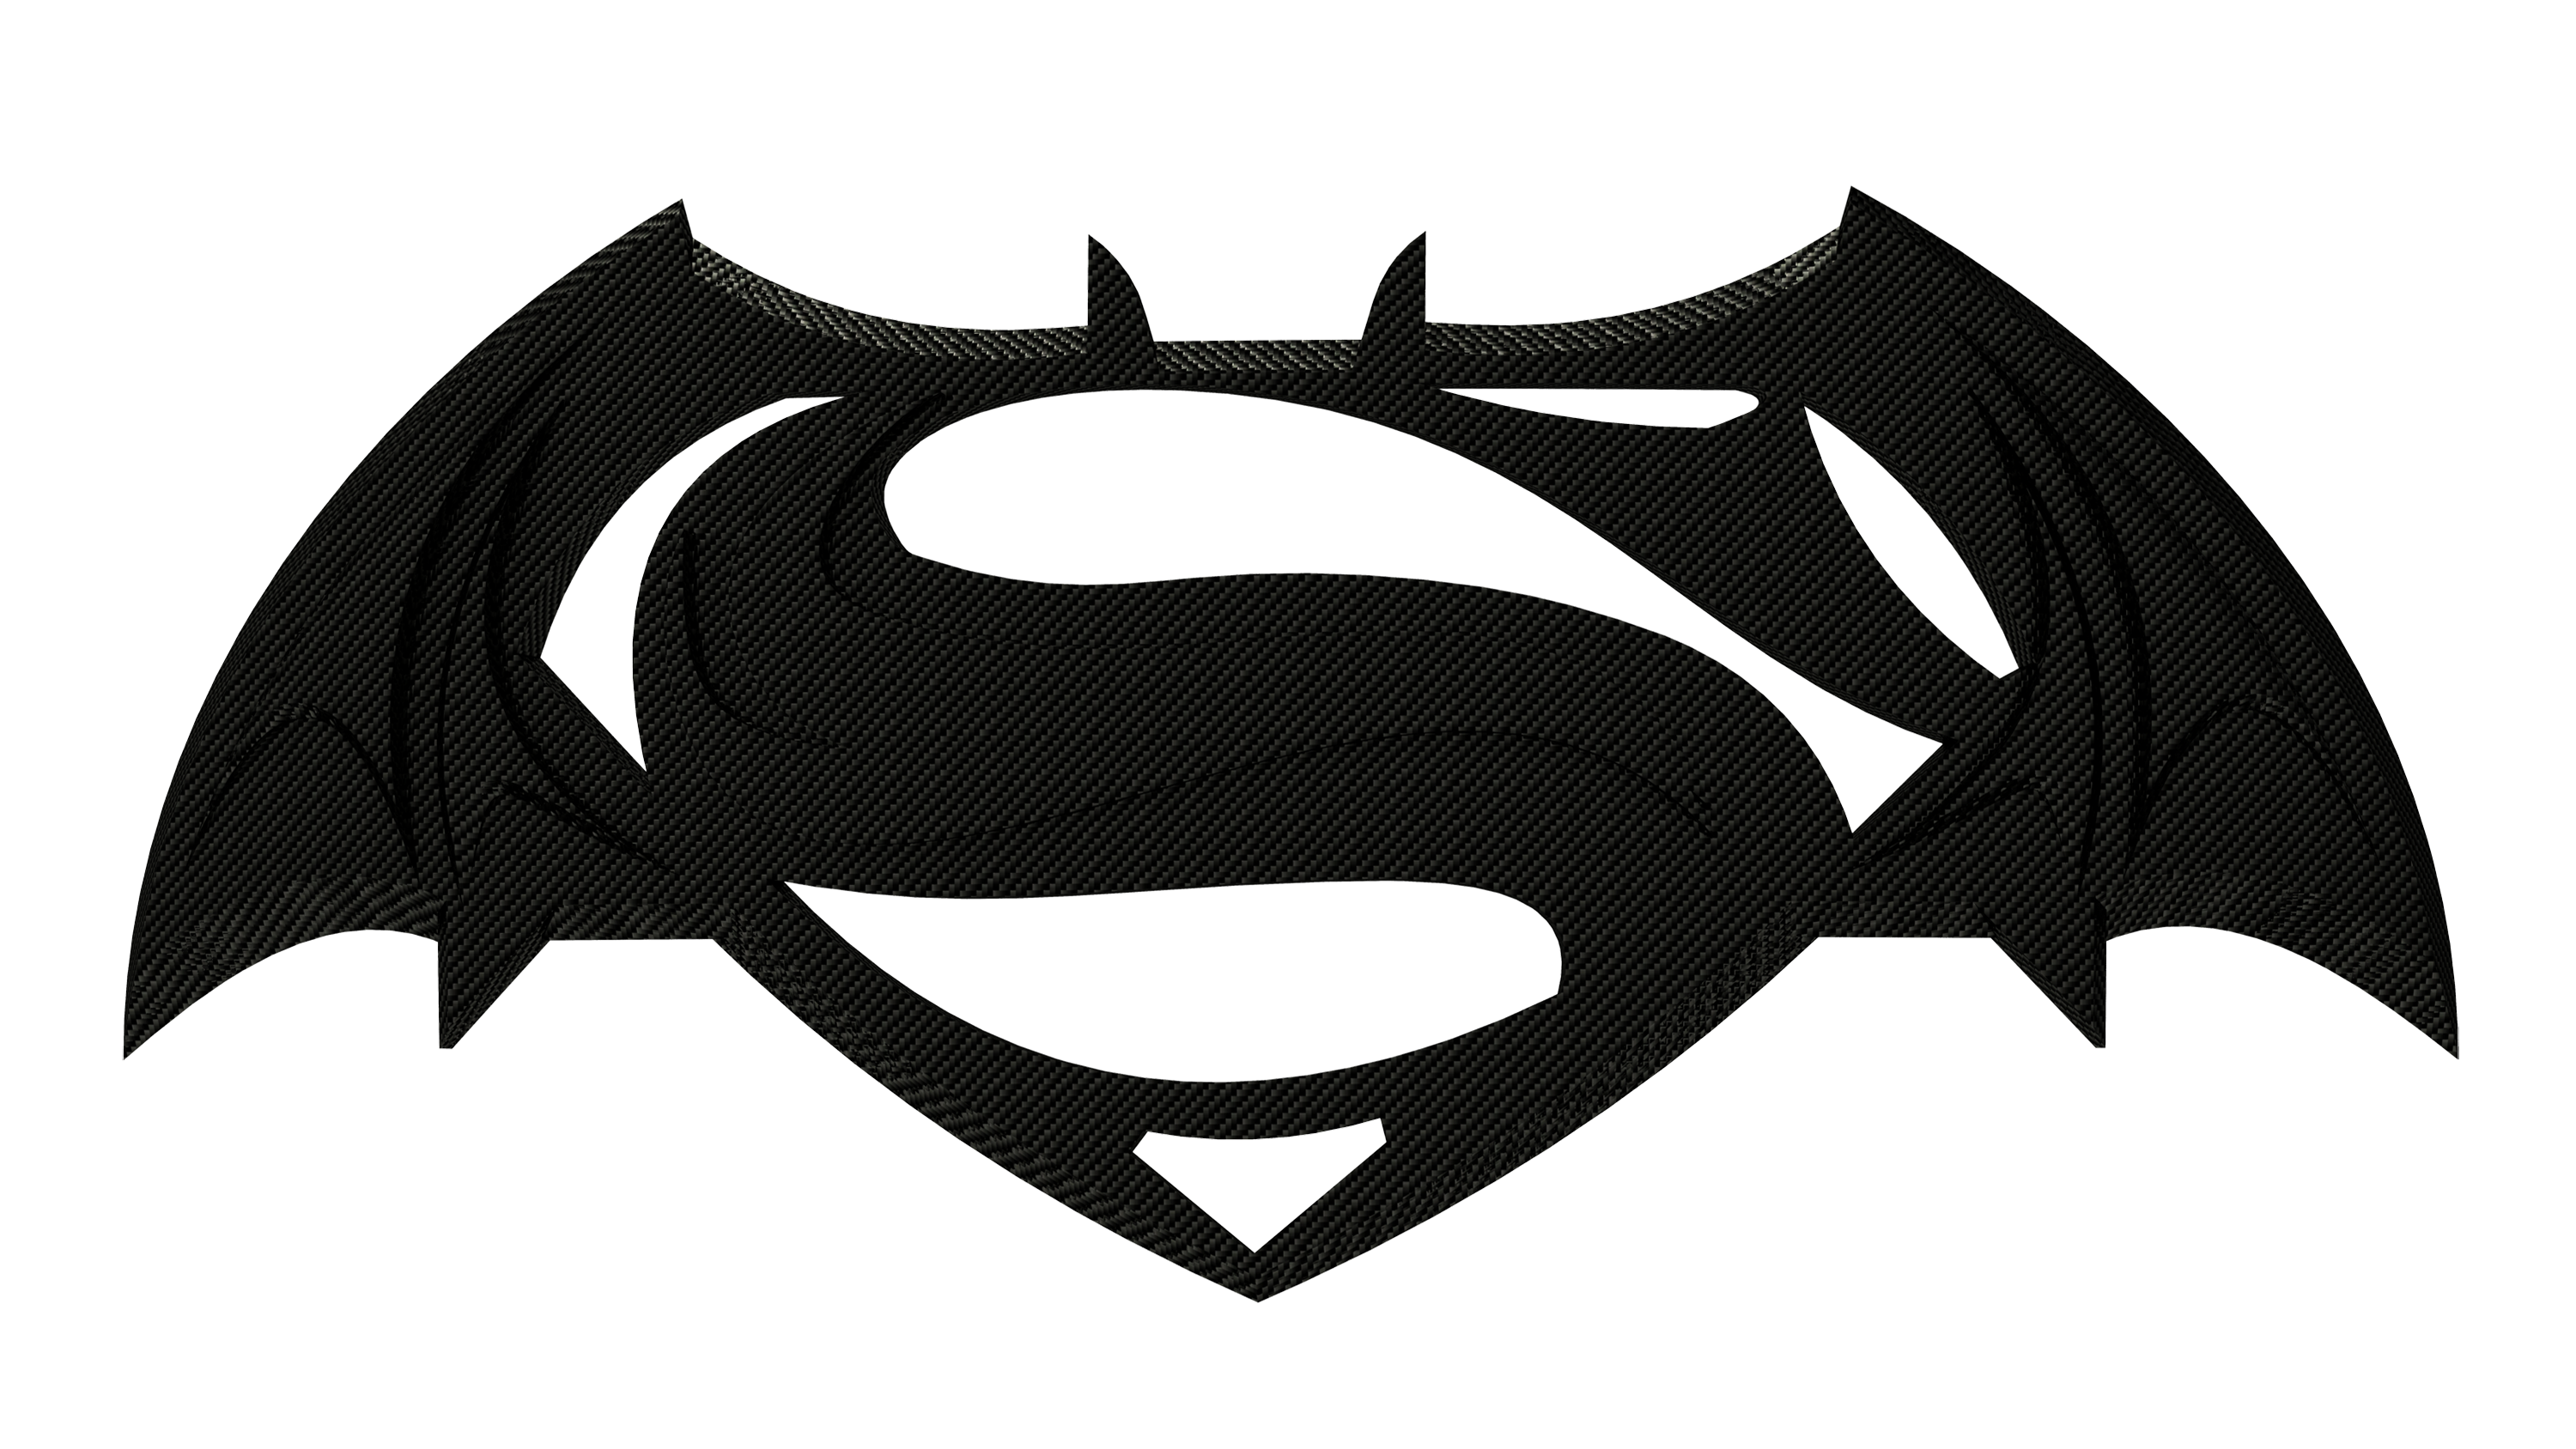 Super hero logo images without s png. Black and white superman